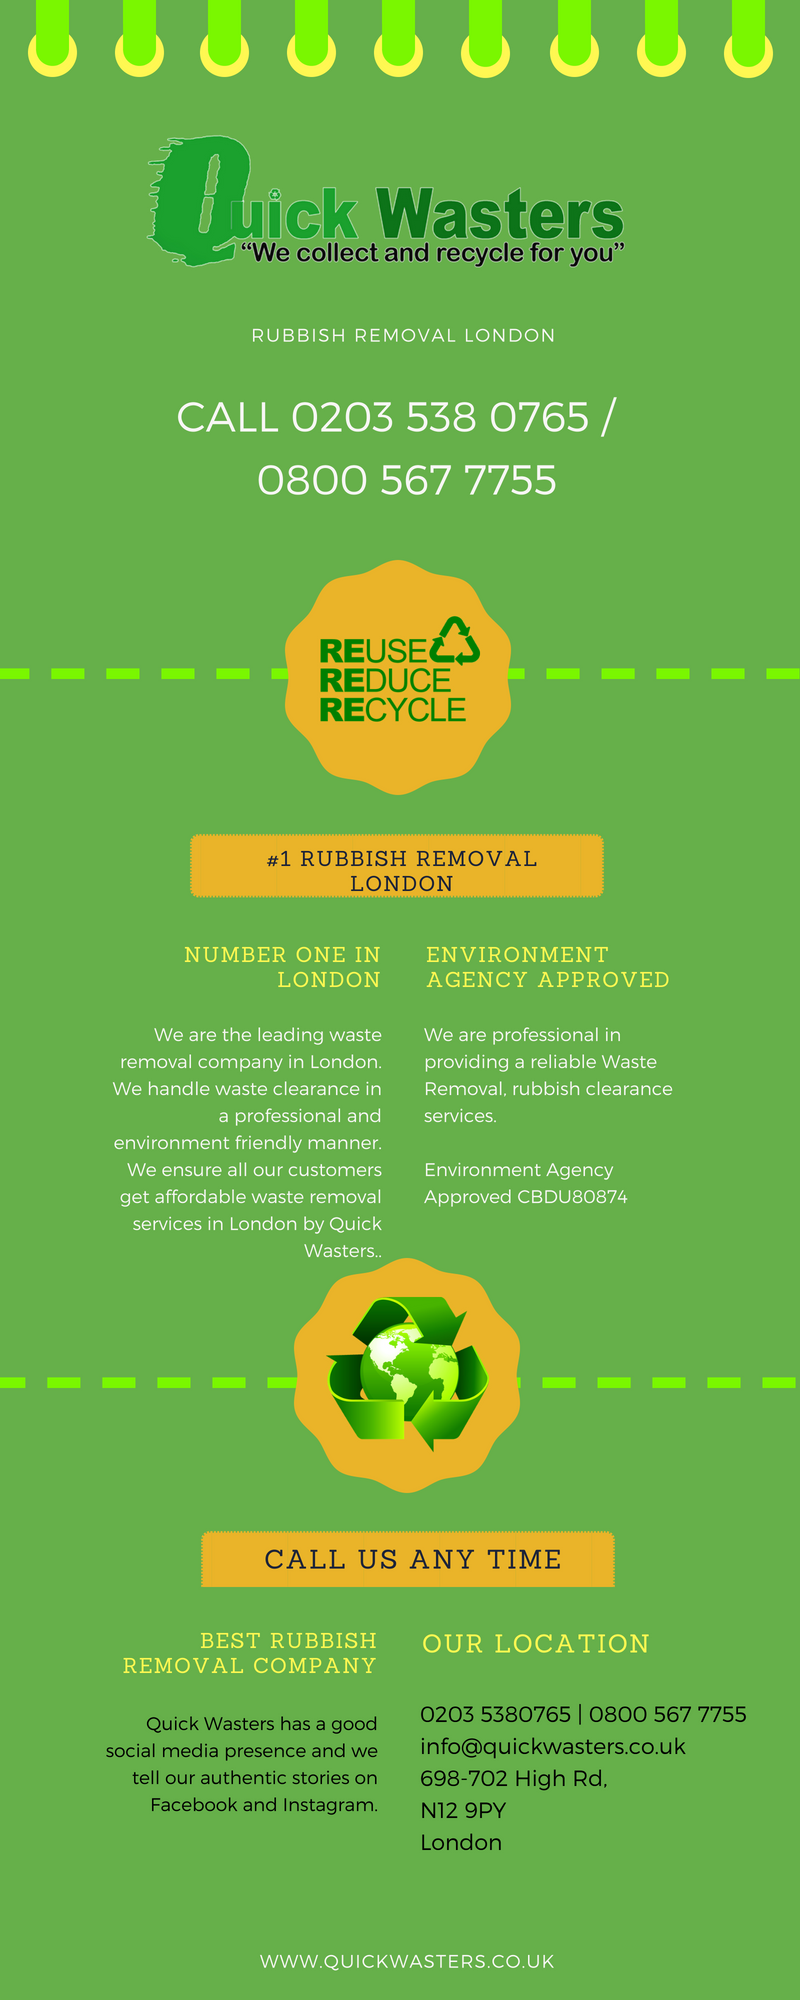 Quickwasters Environment Agency Approved Rubbish Removal London